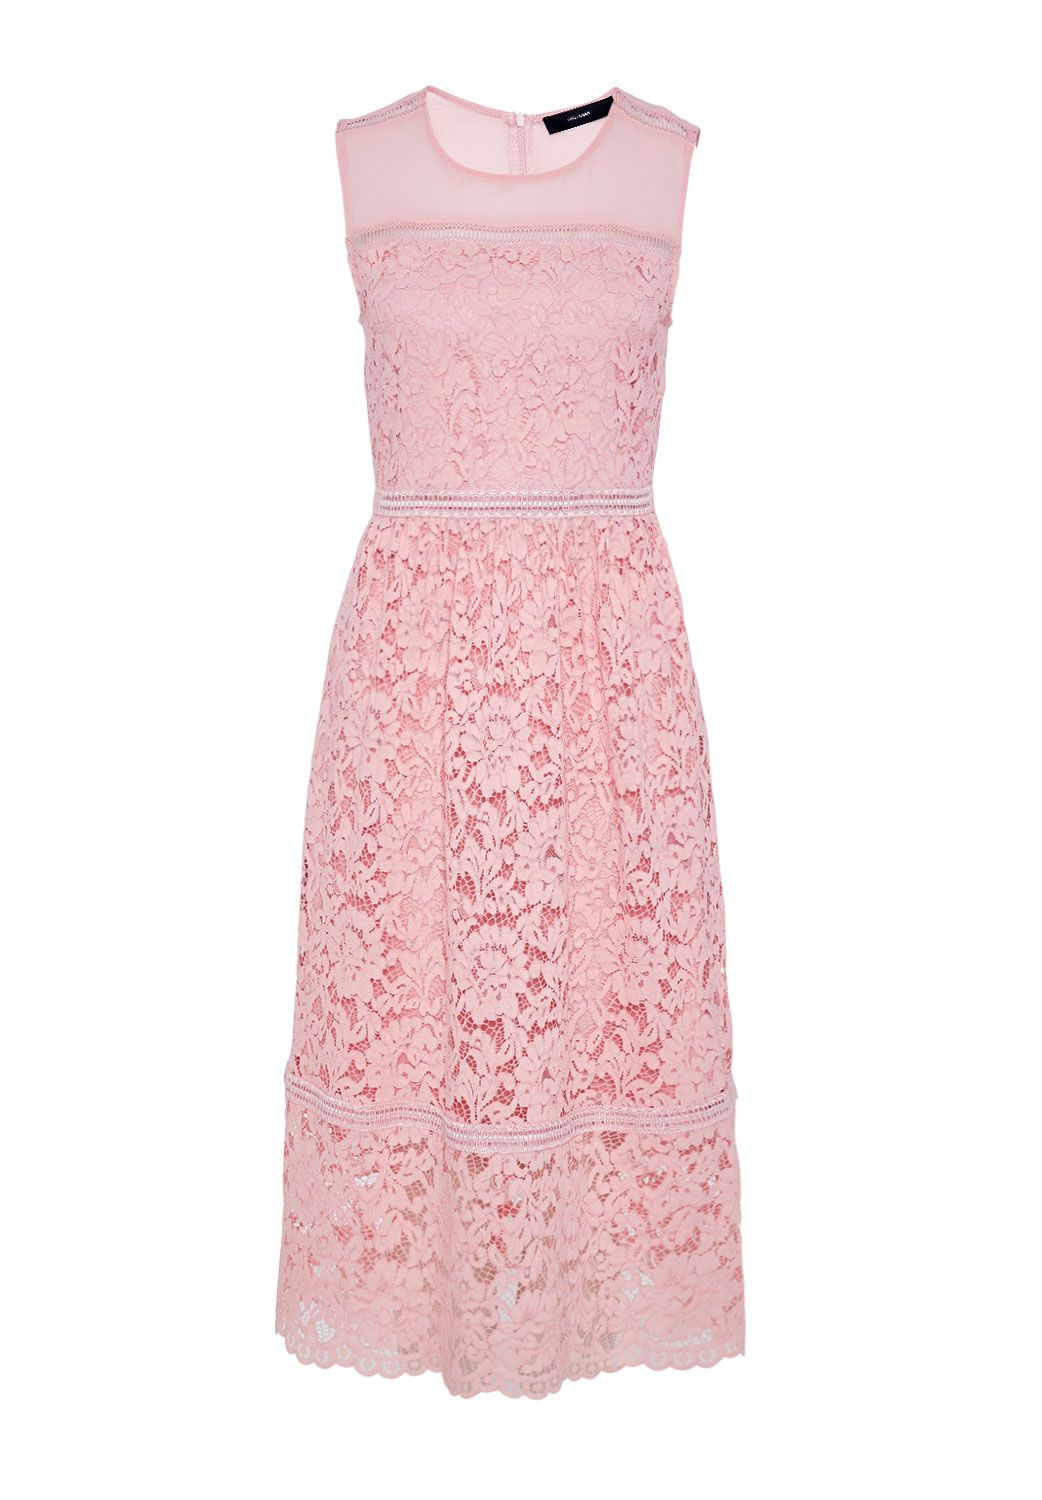 Hallhuber Midi Lace Dress, Pink